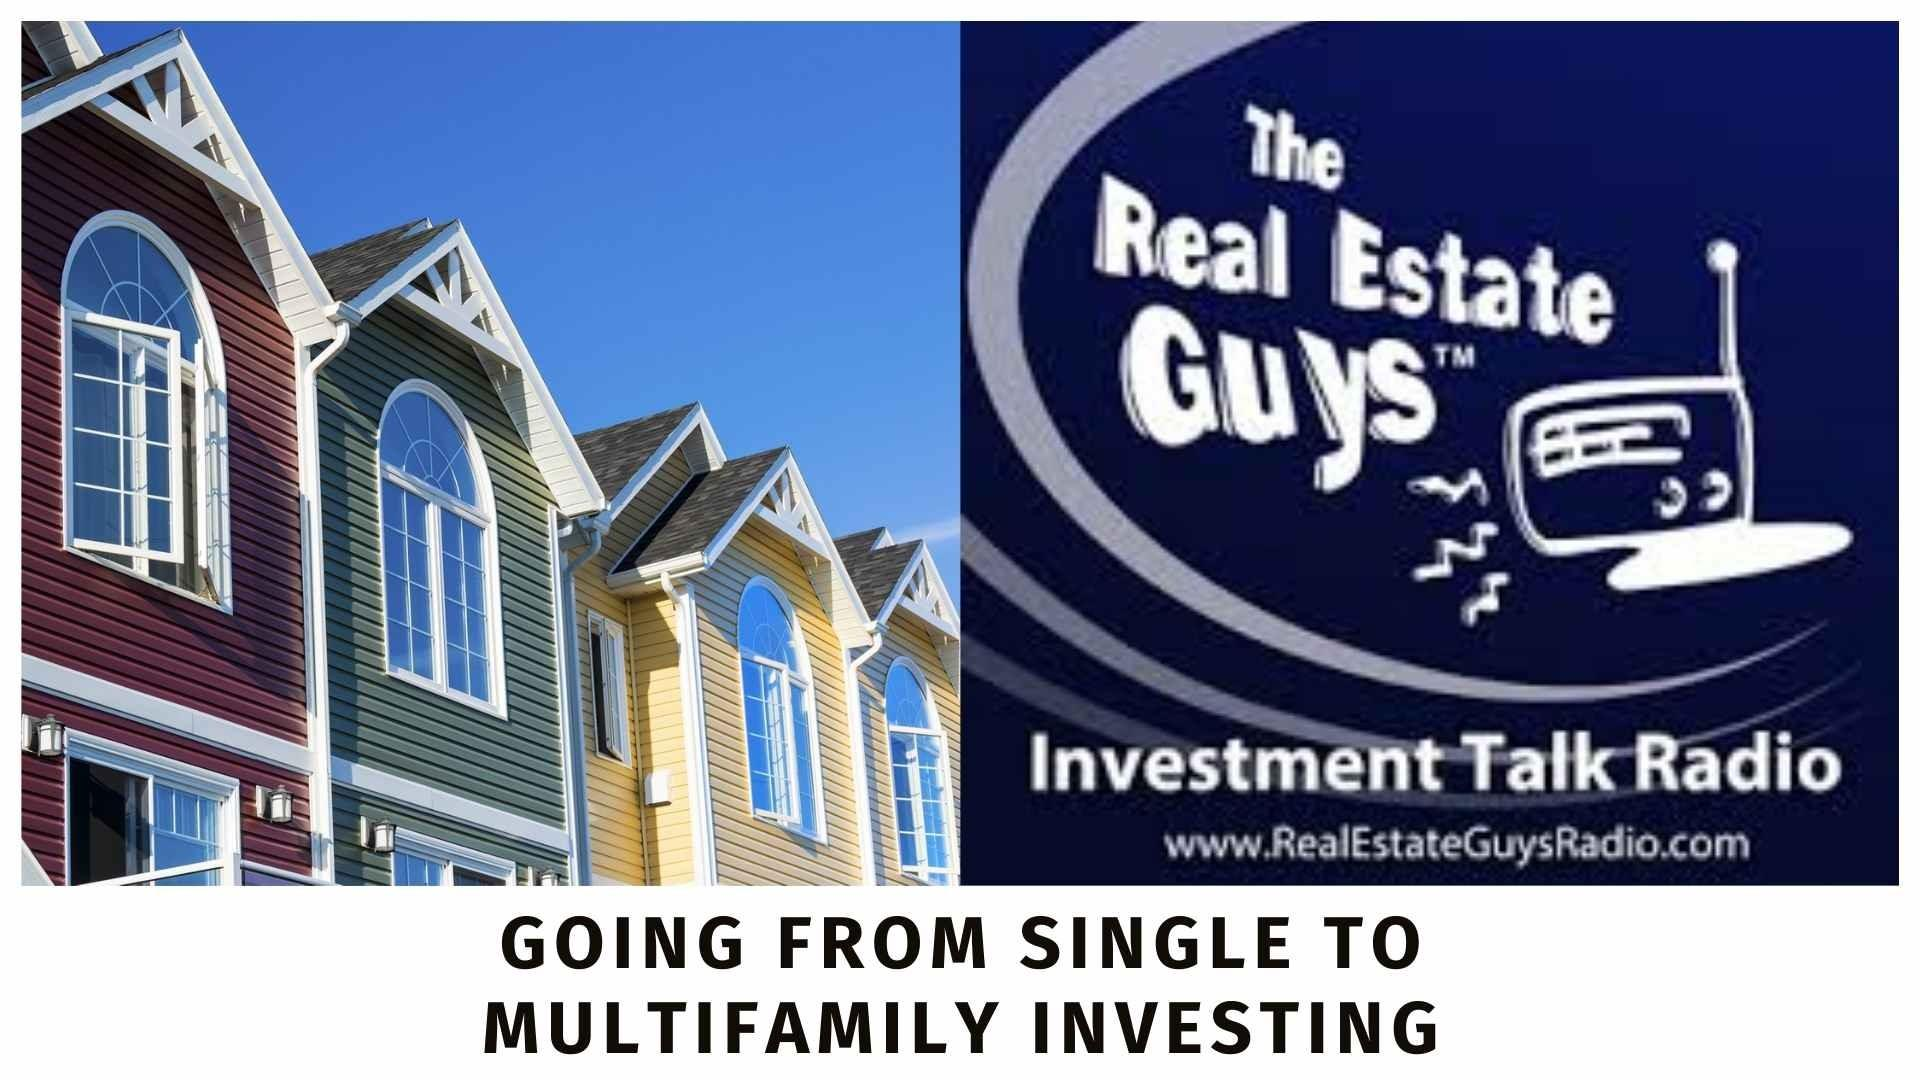 Going From Single to Multifamily Investing